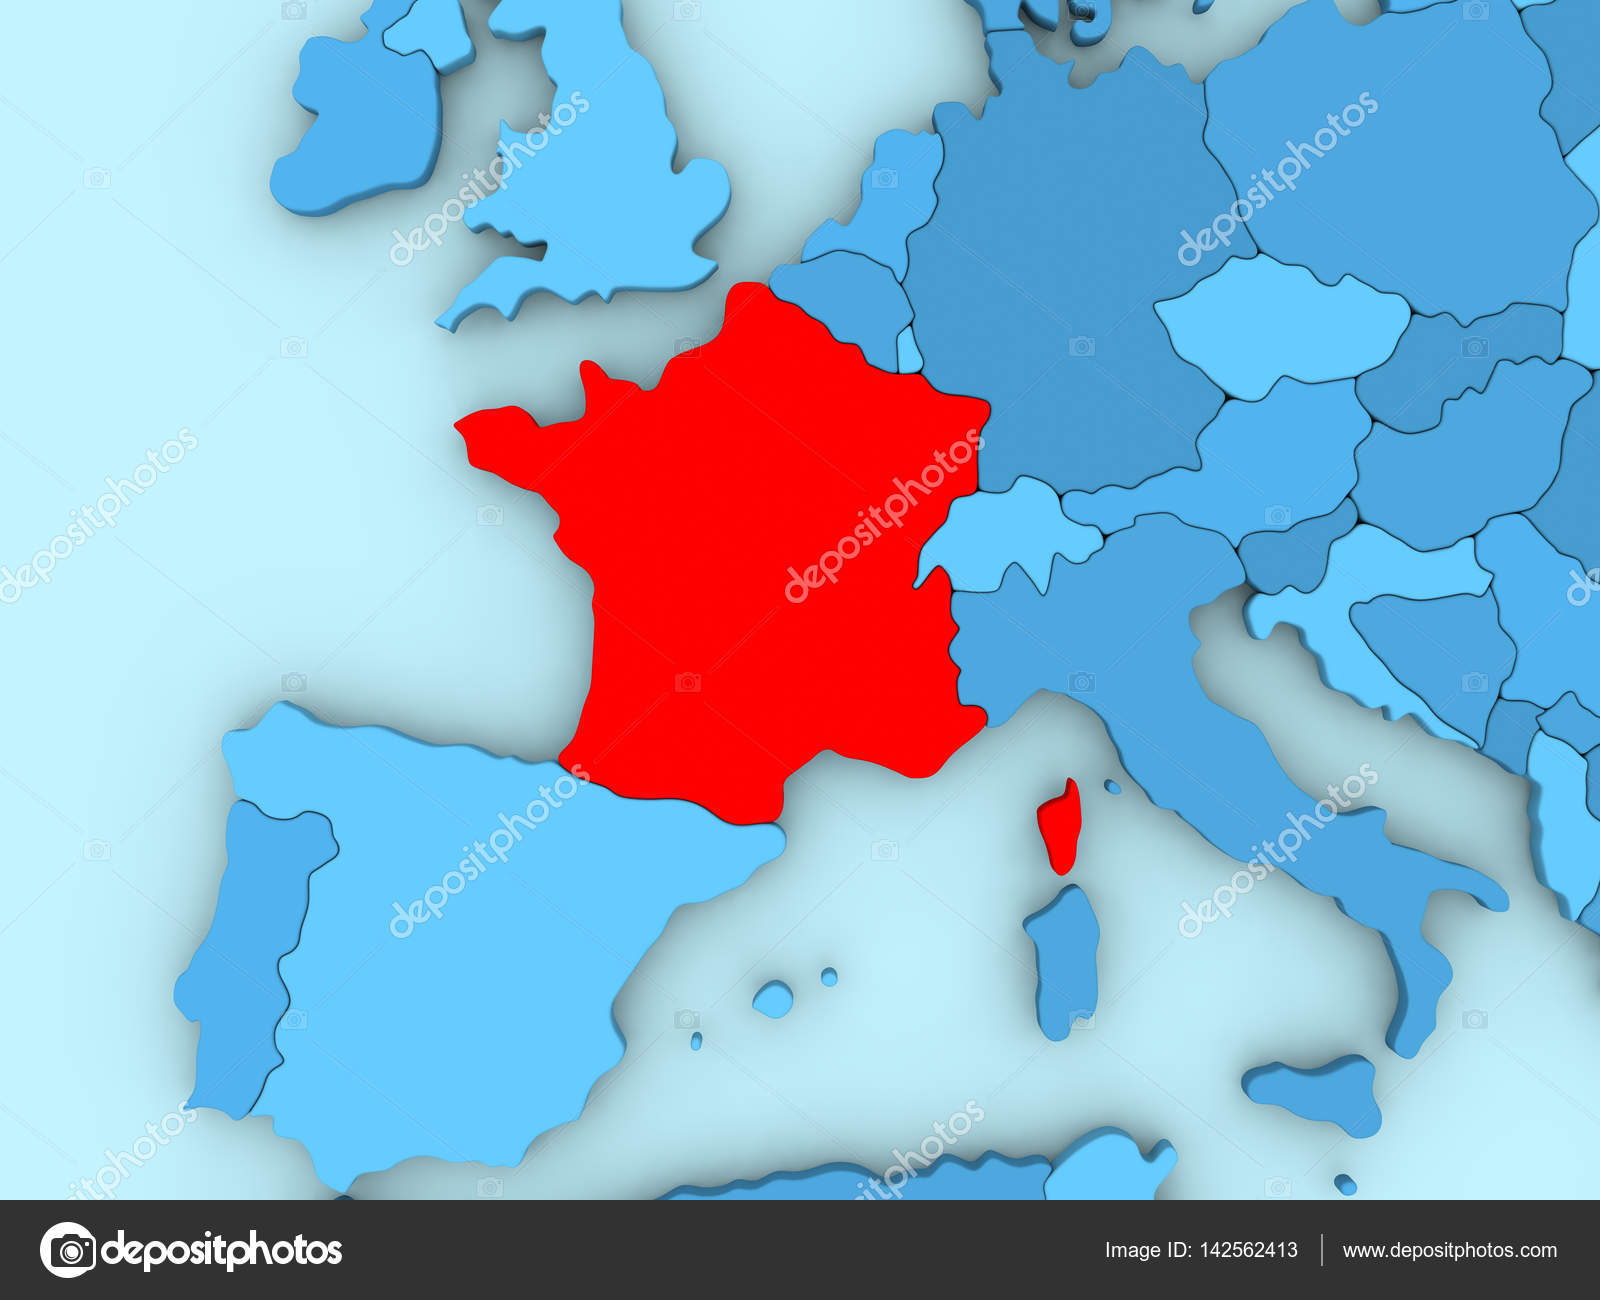 France on 3d map stock photo tomiger 142562413 country of france highlighted in red on blue map 3d illustration photo by tomiger gumiabroncs Images